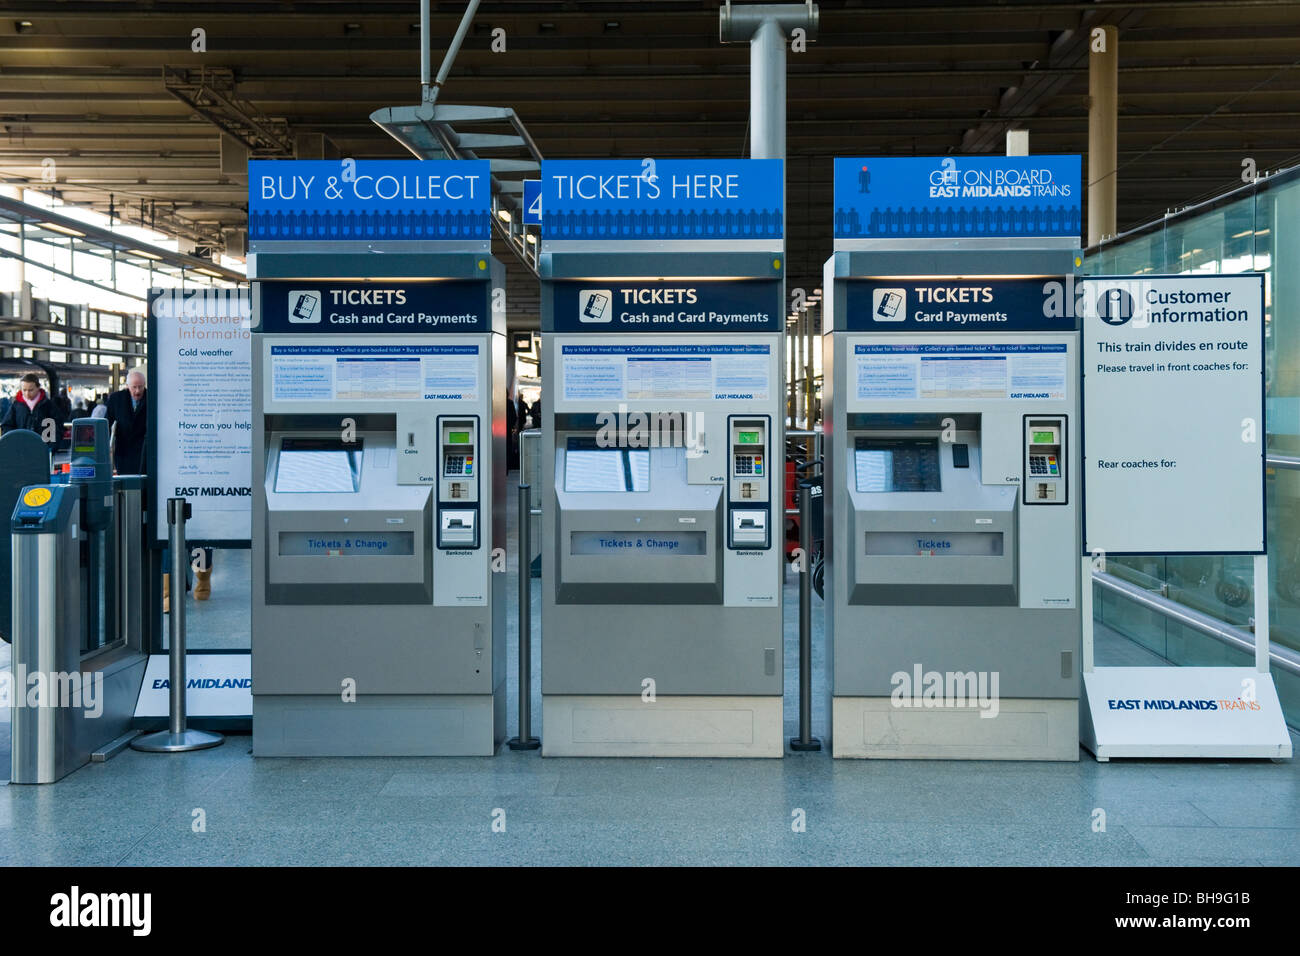 St Pancras Station , East Midlands Trains buy & collect ticket machines - Stock Image